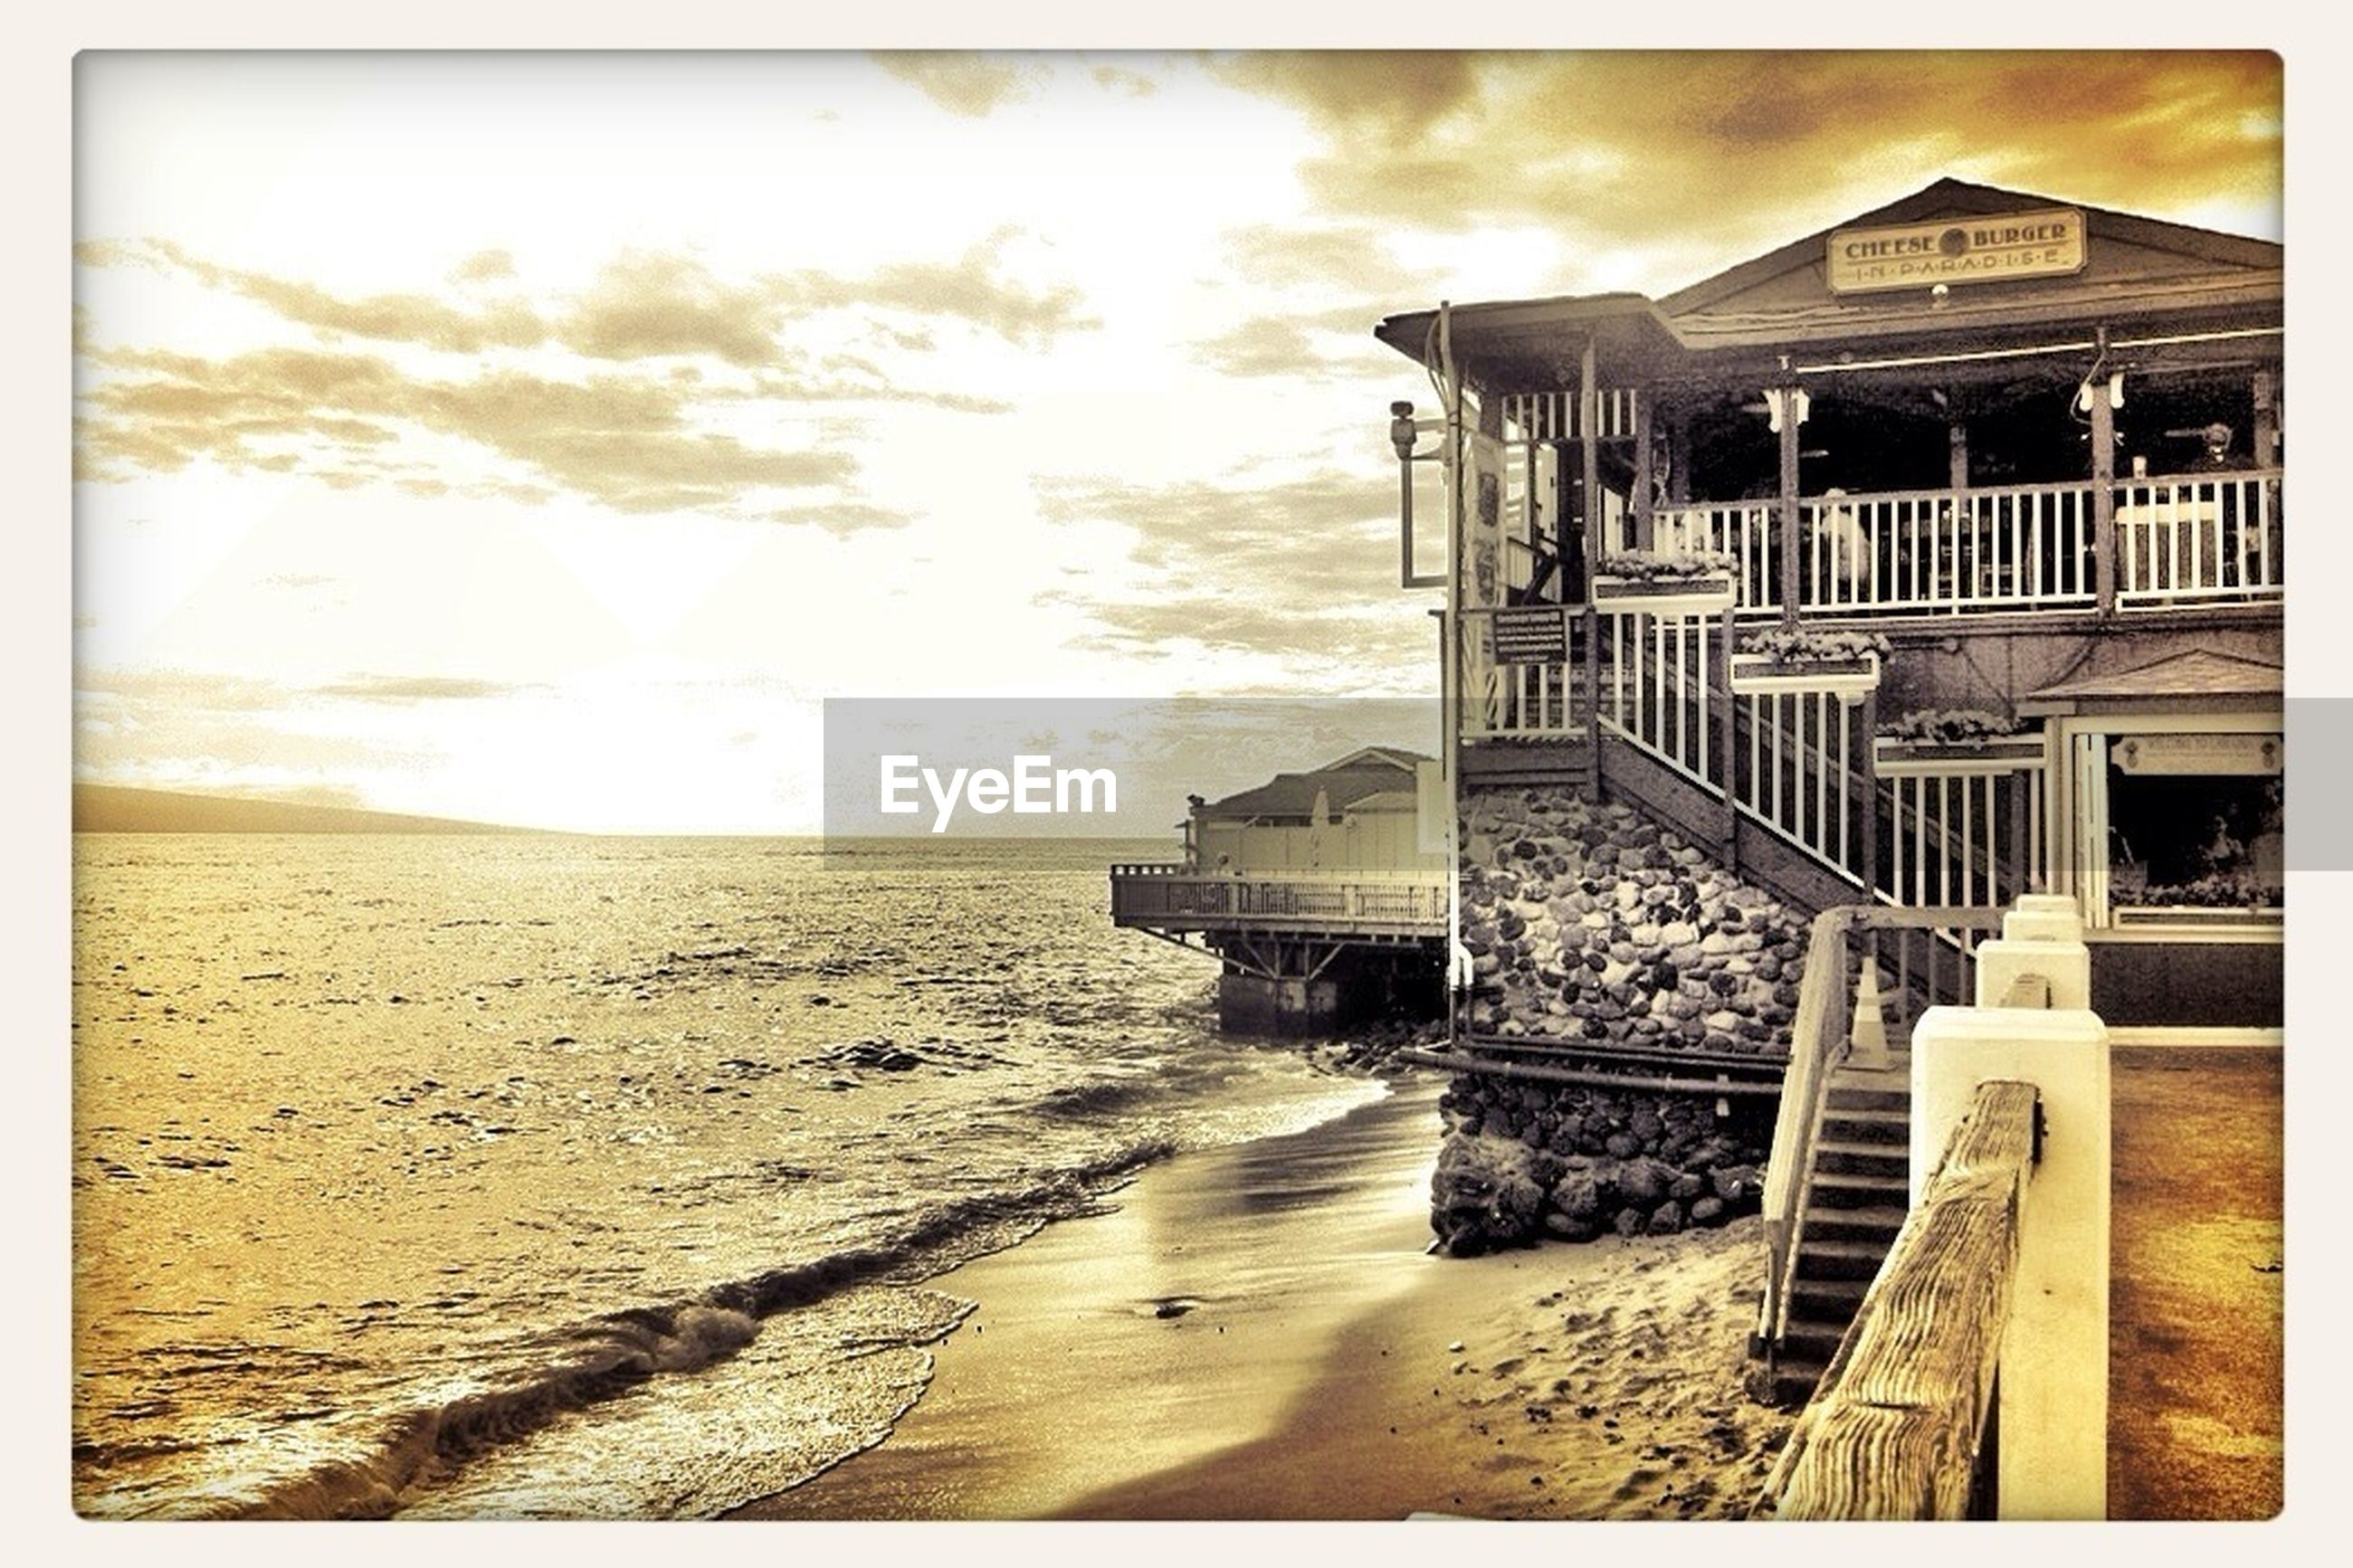 sea, beach, water, built structure, sand, sky, architecture, horizon over water, shore, building exterior, sunlight, cloud - sky, auto post production filter, tranquility, pier, nature, scenics, tranquil scene, wood - material, transfer print